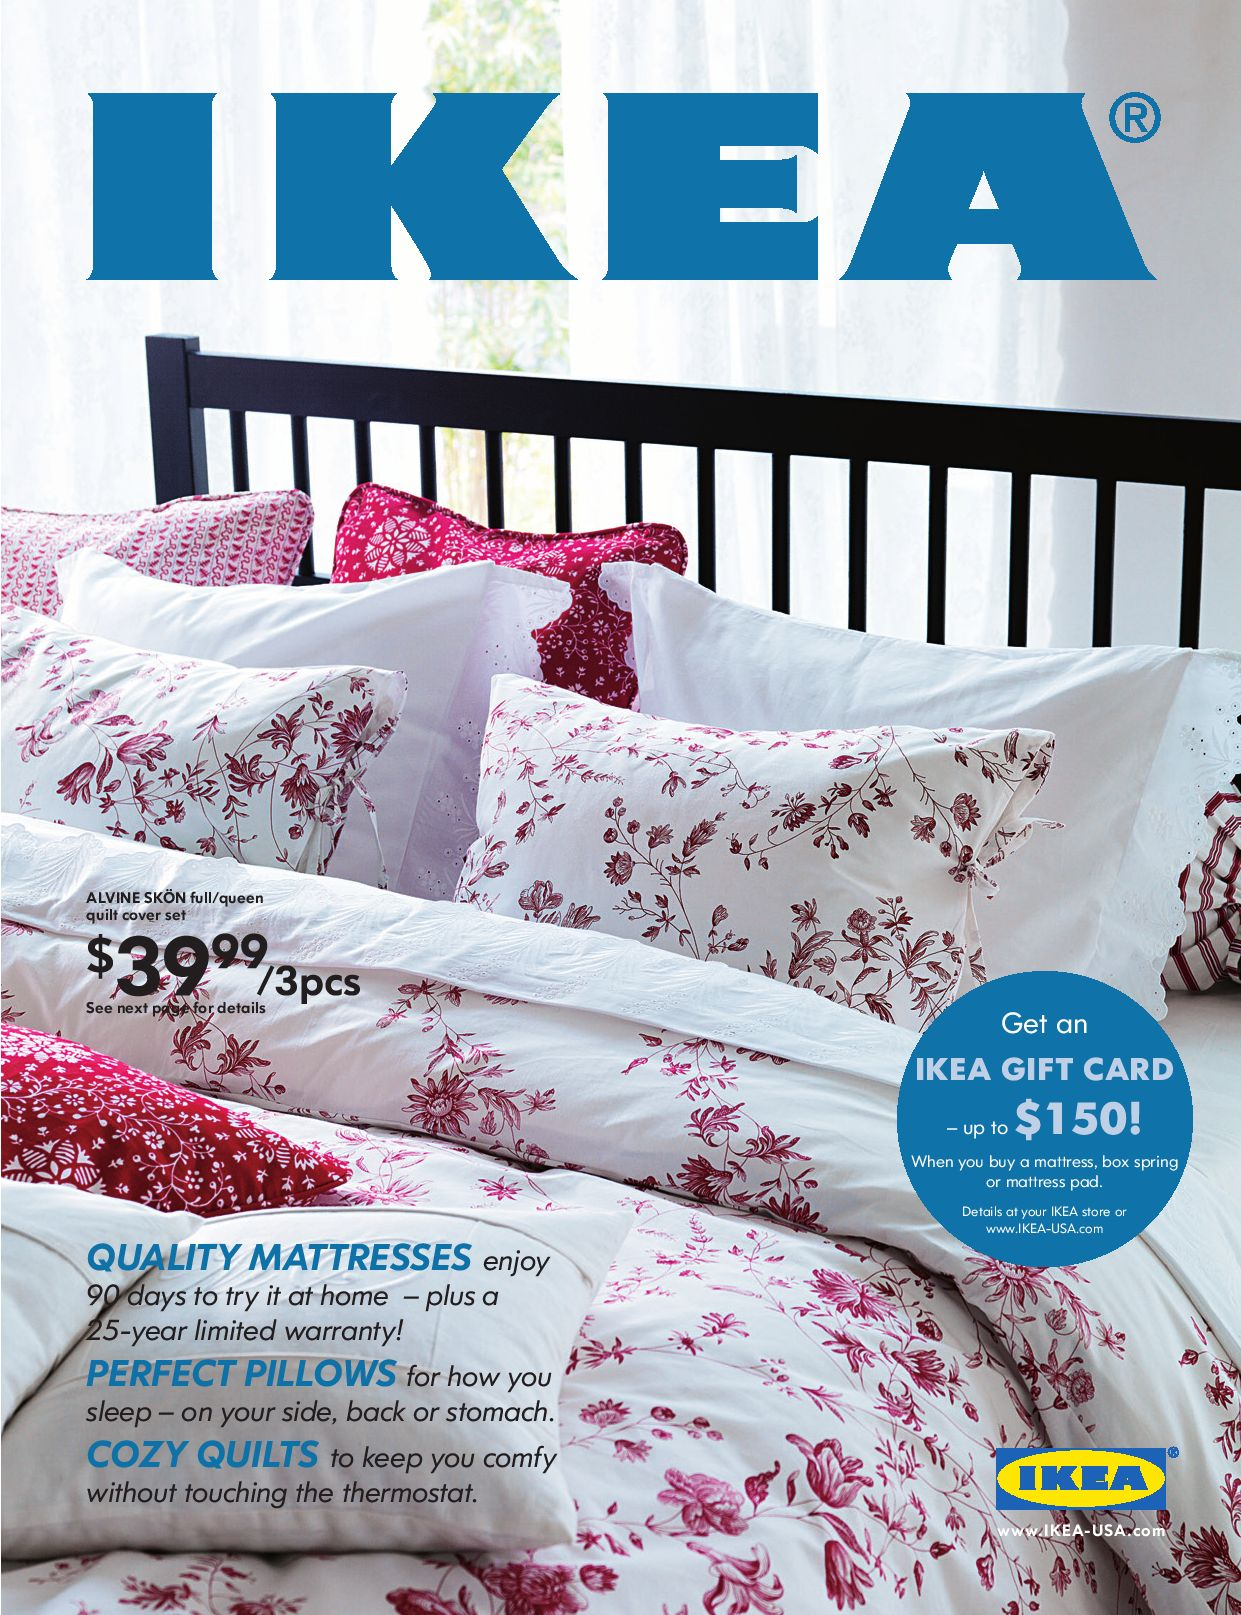 ikea ikea ikea by lajesslefreak issuu. Black Bedroom Furniture Sets. Home Design Ideas